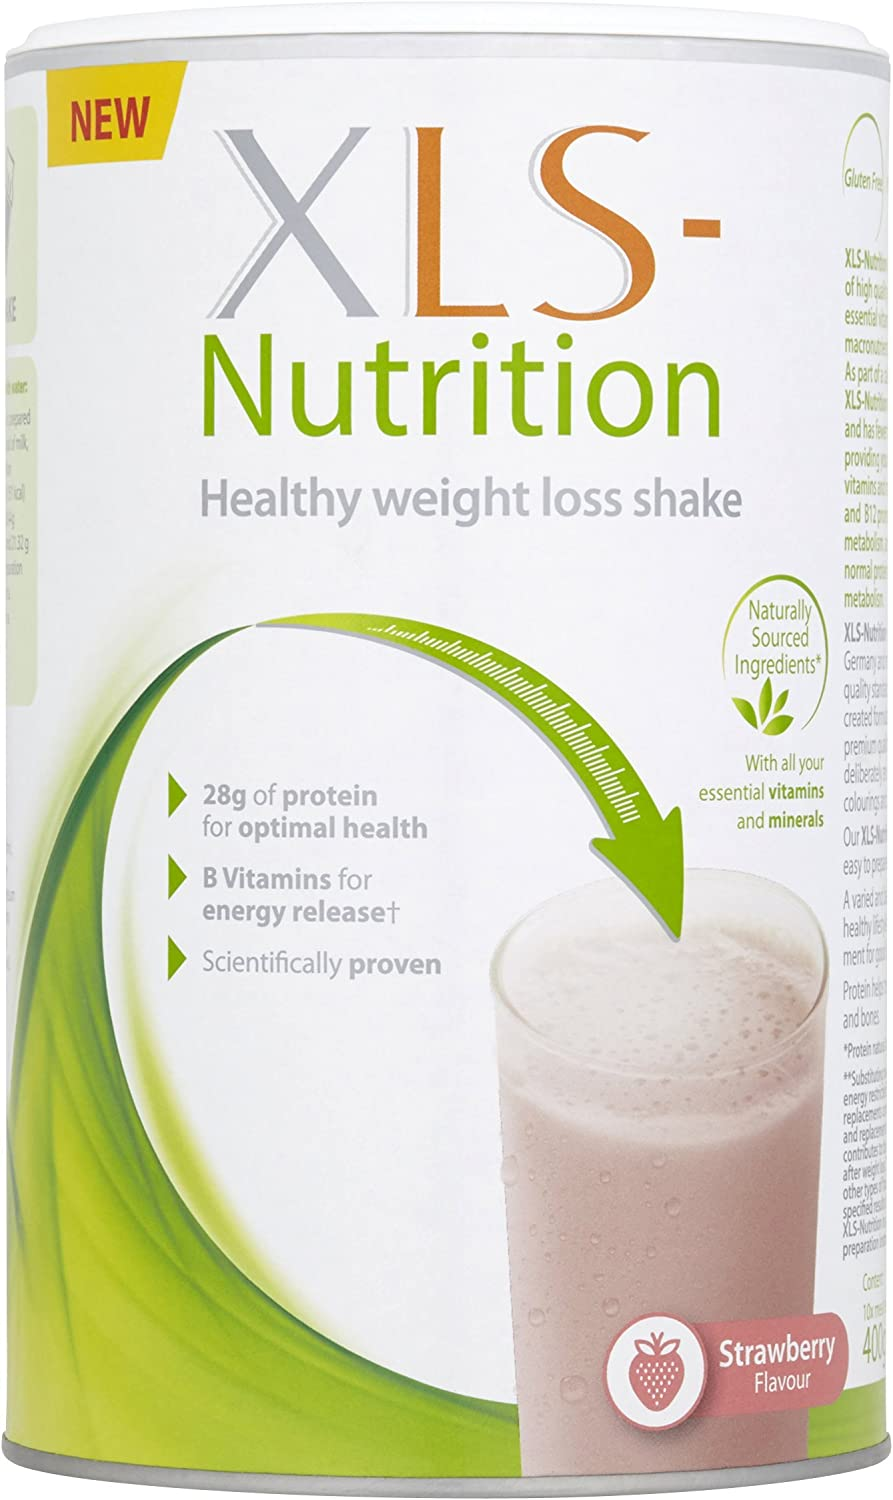 Vi weight loss shakes ingredients